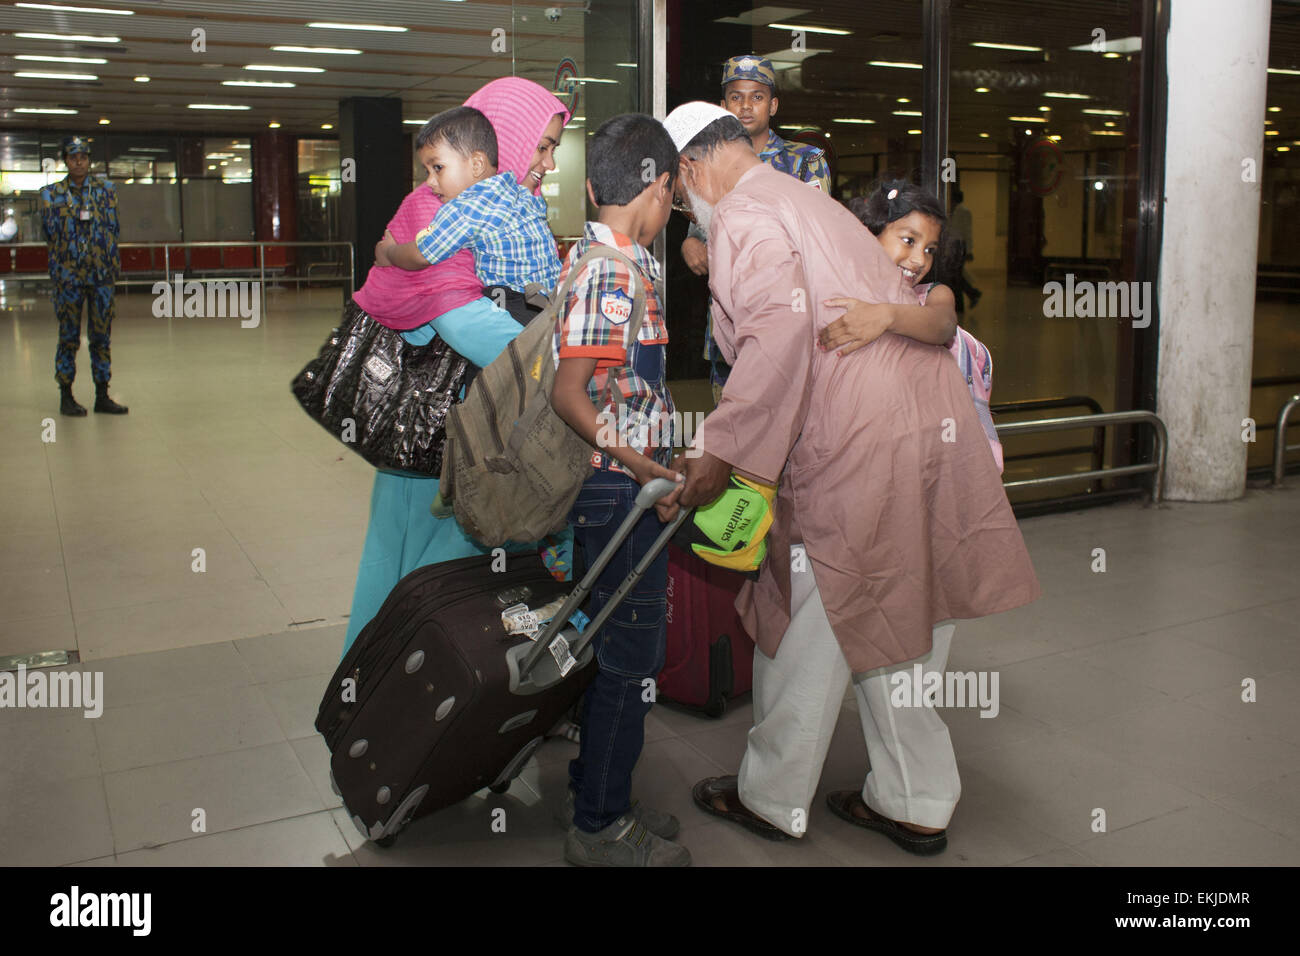 Dhaka, Bangladesh. 10th Apr, 2015. Bangladeshi woman Khadiza Begum (left) along with her three child were returned - Stock Image